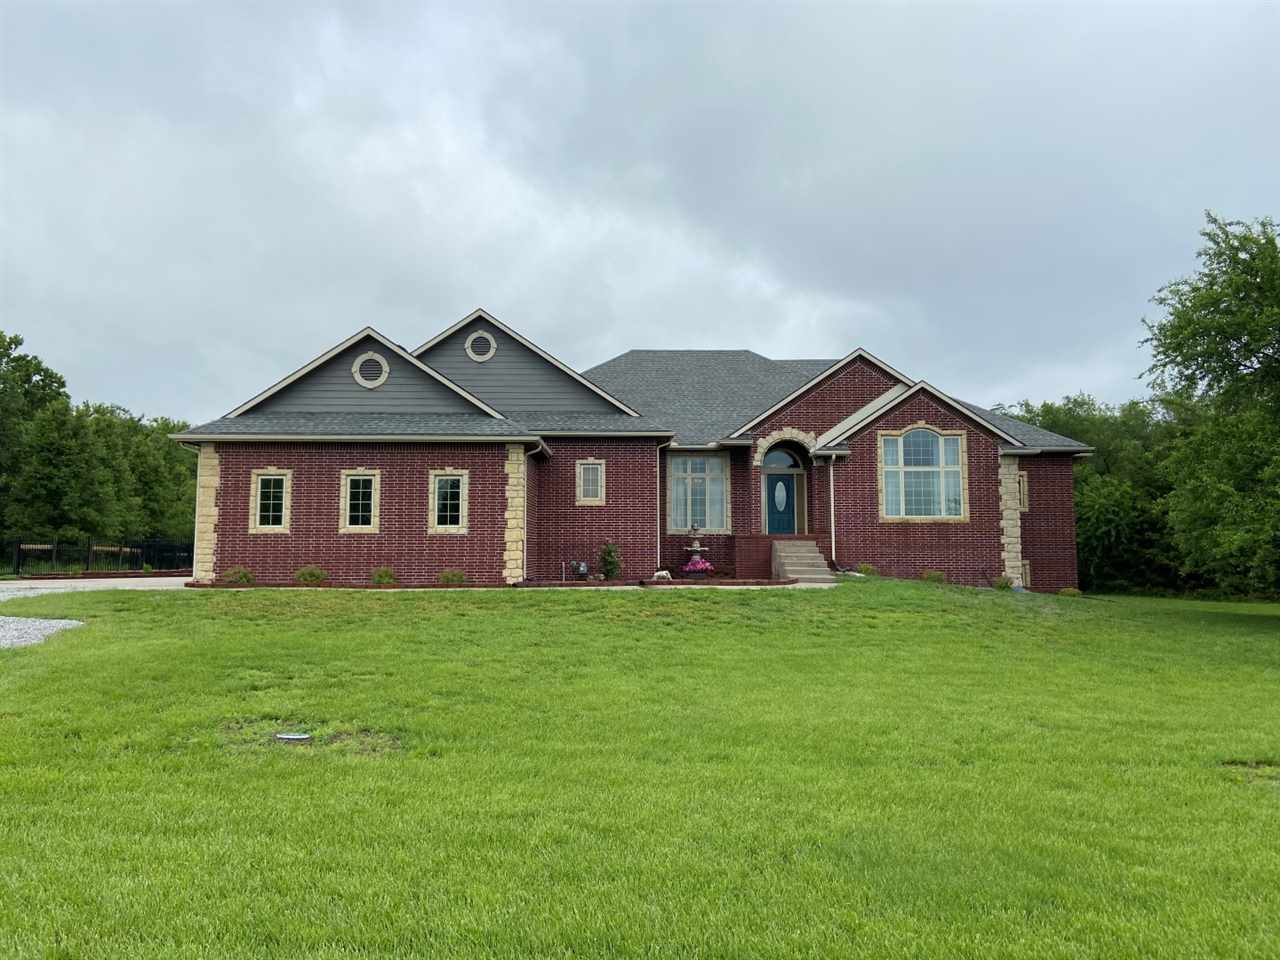 Located in the ever popular Hidden Estates community, this 4800 sq/ft home sits on 5 acres with a po